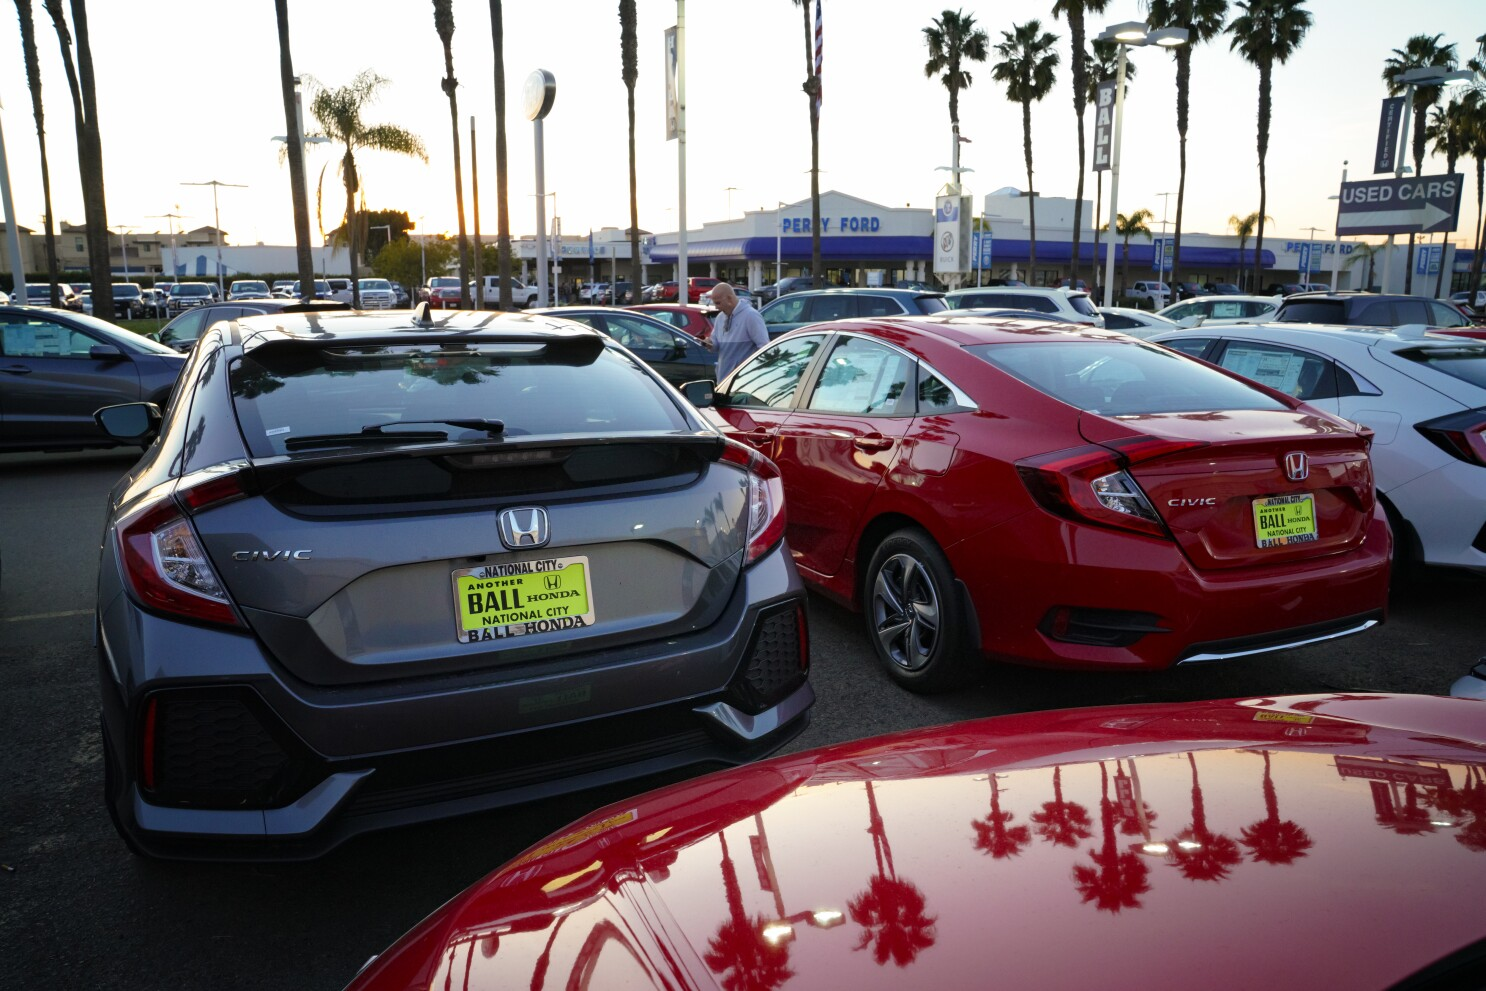 National Car Sales >> California Car Sales Slow Down In The First Quarter The San Diego